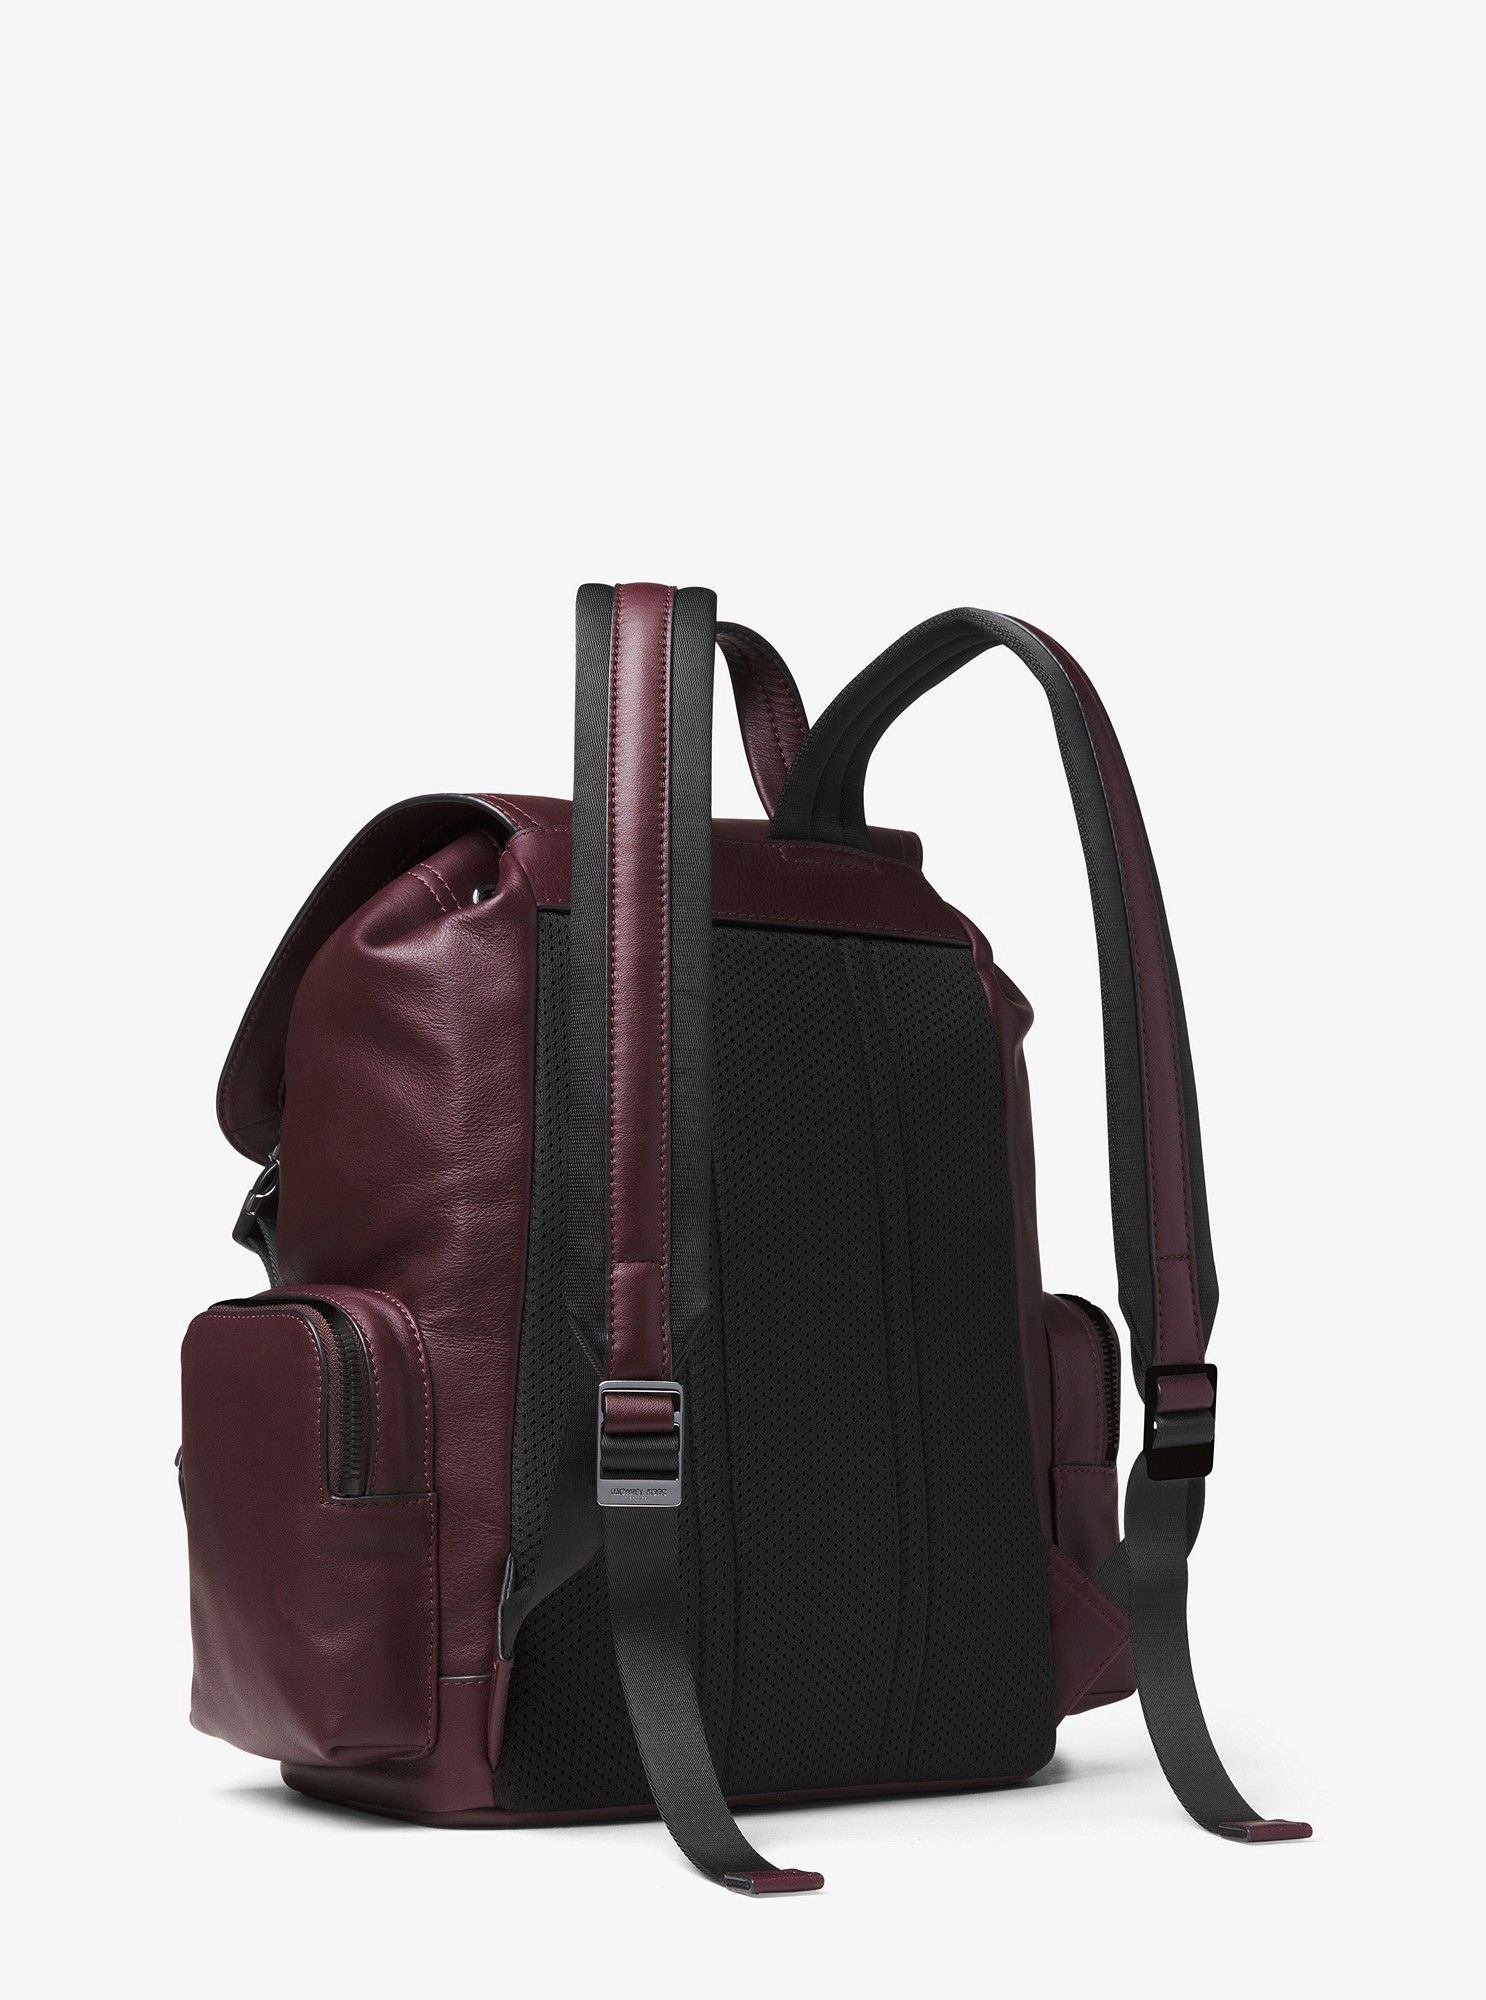 82156a984596 Michael Kors Henry Leather Backpack - Cordovan   Products   Leather ...